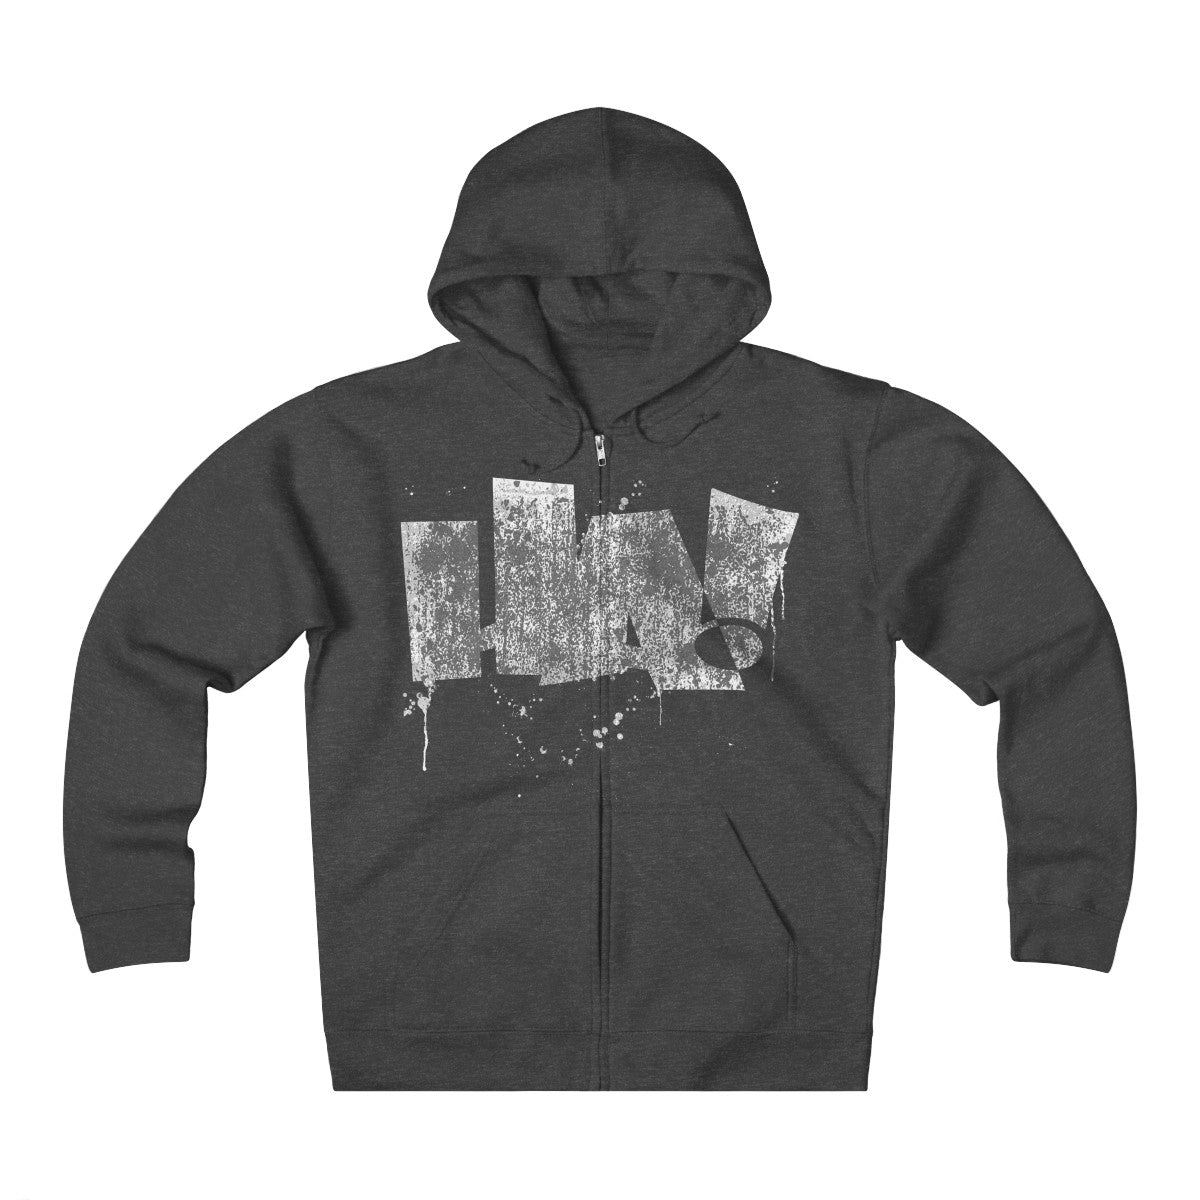 Grunge HA! - Unisex Heavyweight Fleece Zip Hoodie - Herban Apparel